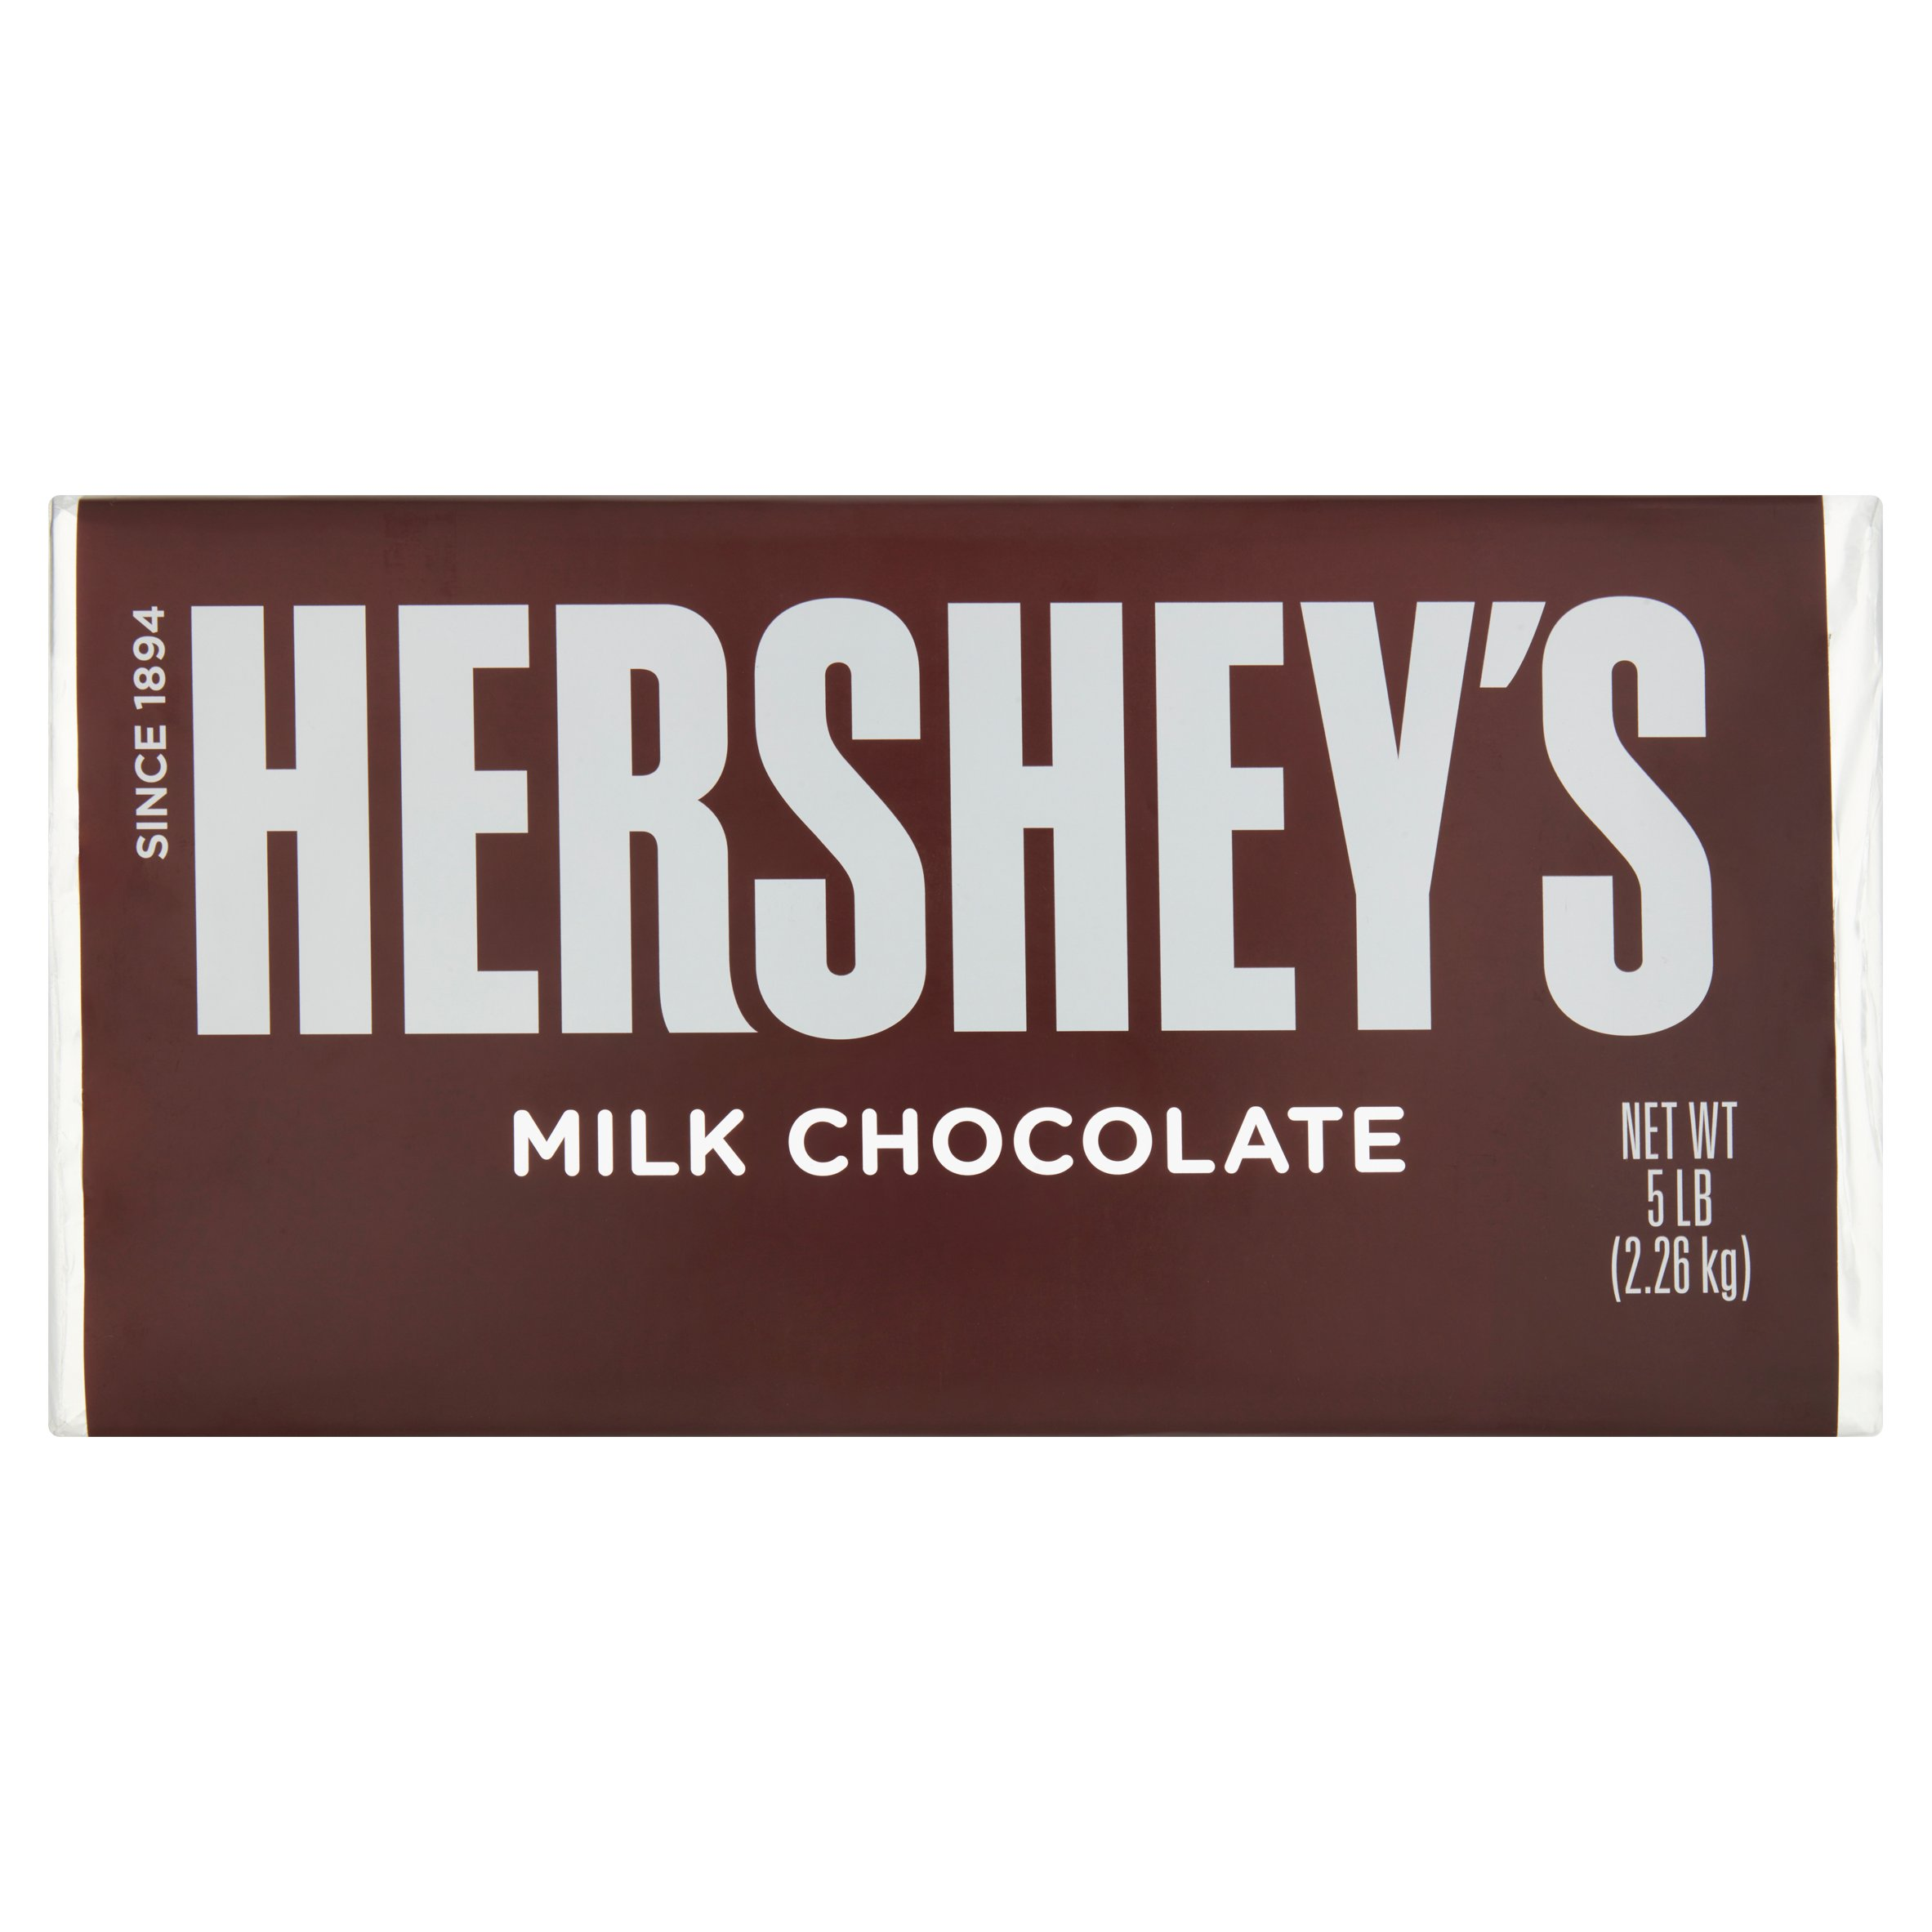 Hershey's Milk Chocolate, 5 lb by The Hershey Company